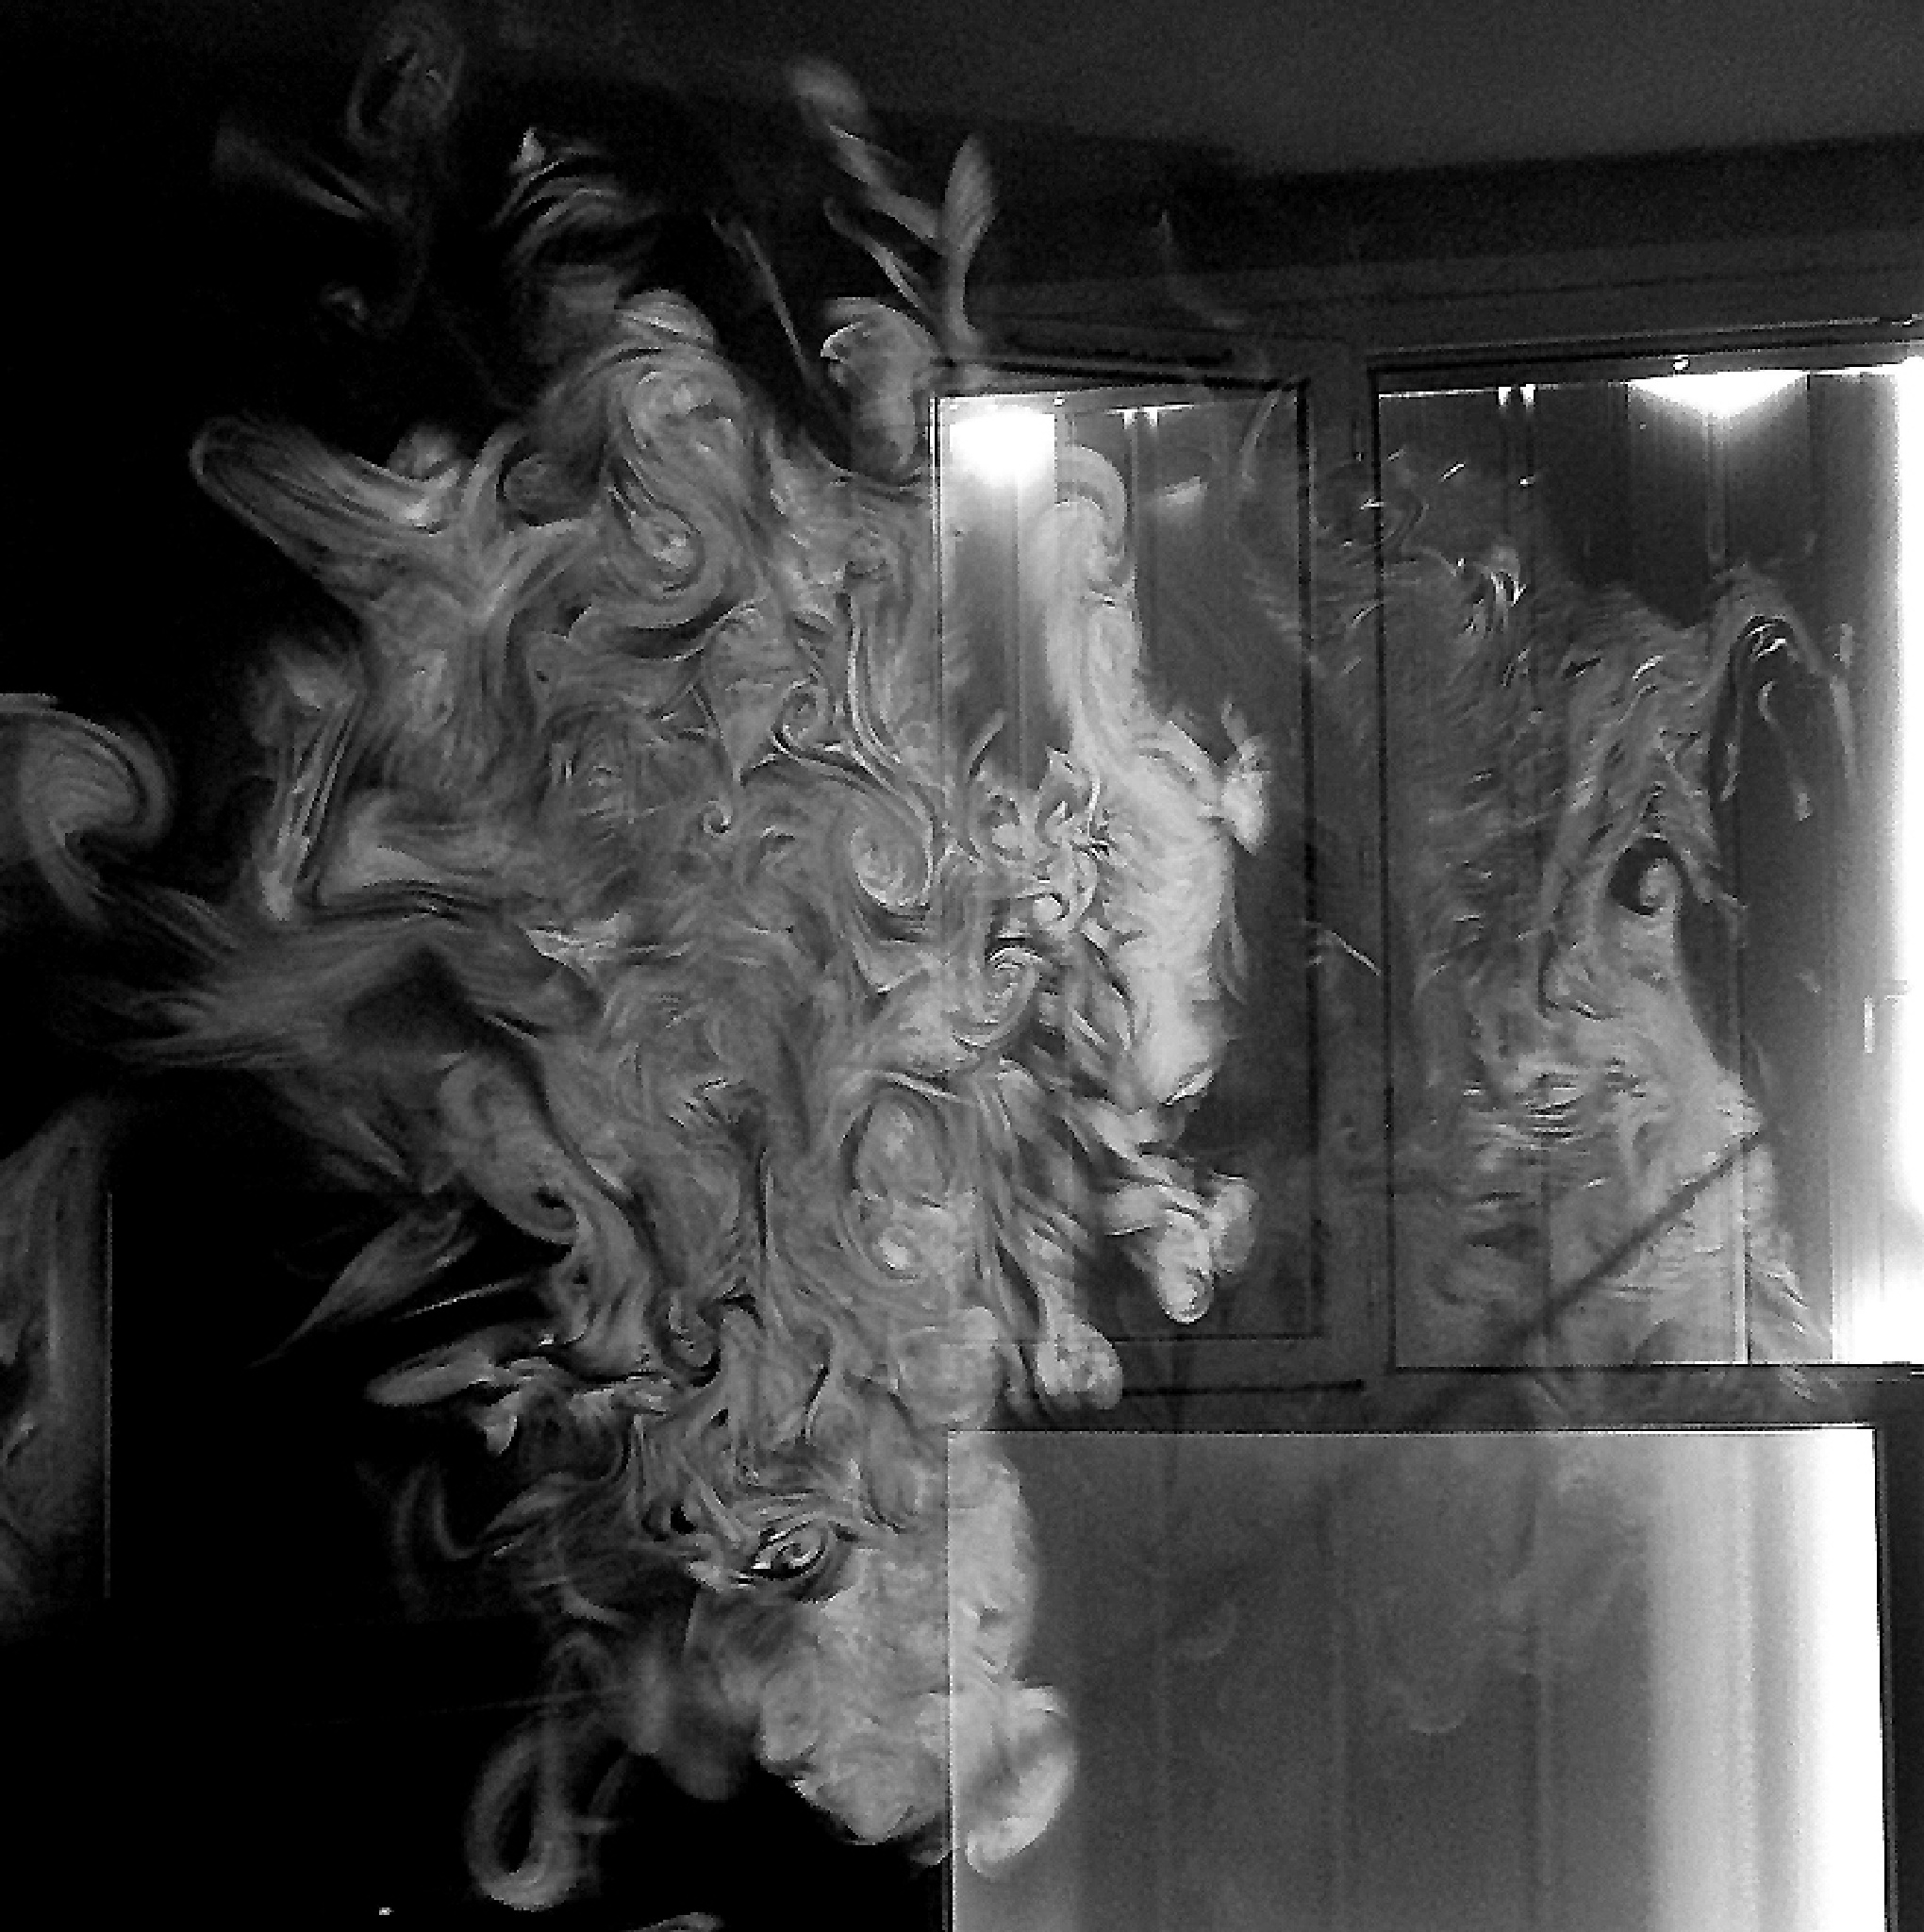 The Face at the window. Tobacco Smoke heading for Fresh Air. France.  by Malcolm White